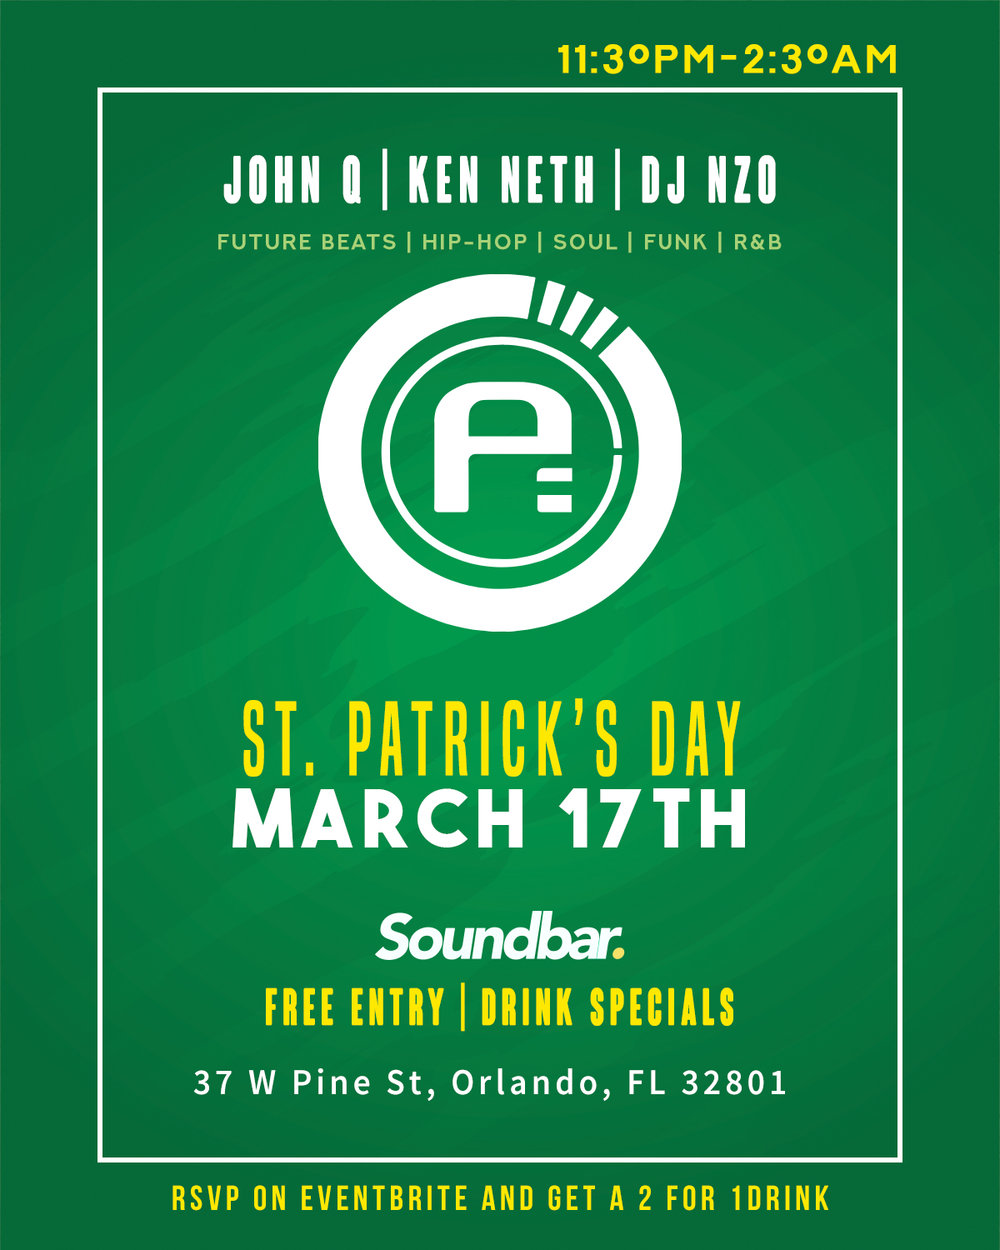 Join Us St Patrick's Day March 17th All My Homies At Soundbar!  Show your RSVP receipt and receive a 2 for 1 drink ticket!  We're back at @soundbar.orl, and we're ready to groove. You already know how it goes down! If you dont know then what are you waiting for? bring your dancing shoes! We will kick things off at 11pm with nothing but the vibes.  Are you a fan of Hip Hop , R&B, and old school? This is the right place for you. Got a taste for any of these other genres, Future beats & R&B, Reggae, Neo Soul, Footwork. NO Bounce, Jersey club, Disco Funk, Chicago house, UKG, Baile Funk and more eclectic dance music? Then you will most definitely want come out and enjoy good company with dope music, and the best drink & bottle specials in downtown orlando!  SoundBar - 37 W Pine St. Orlando Florida 32801  Time: 11:30pm - 2:30am  Free Entry 21+  under 21 - $10  Ladies drink free 11:30pm - 12:30am 2 for 1 Drink's (with RSVP) $60 Bottles (Jack daniels + More)